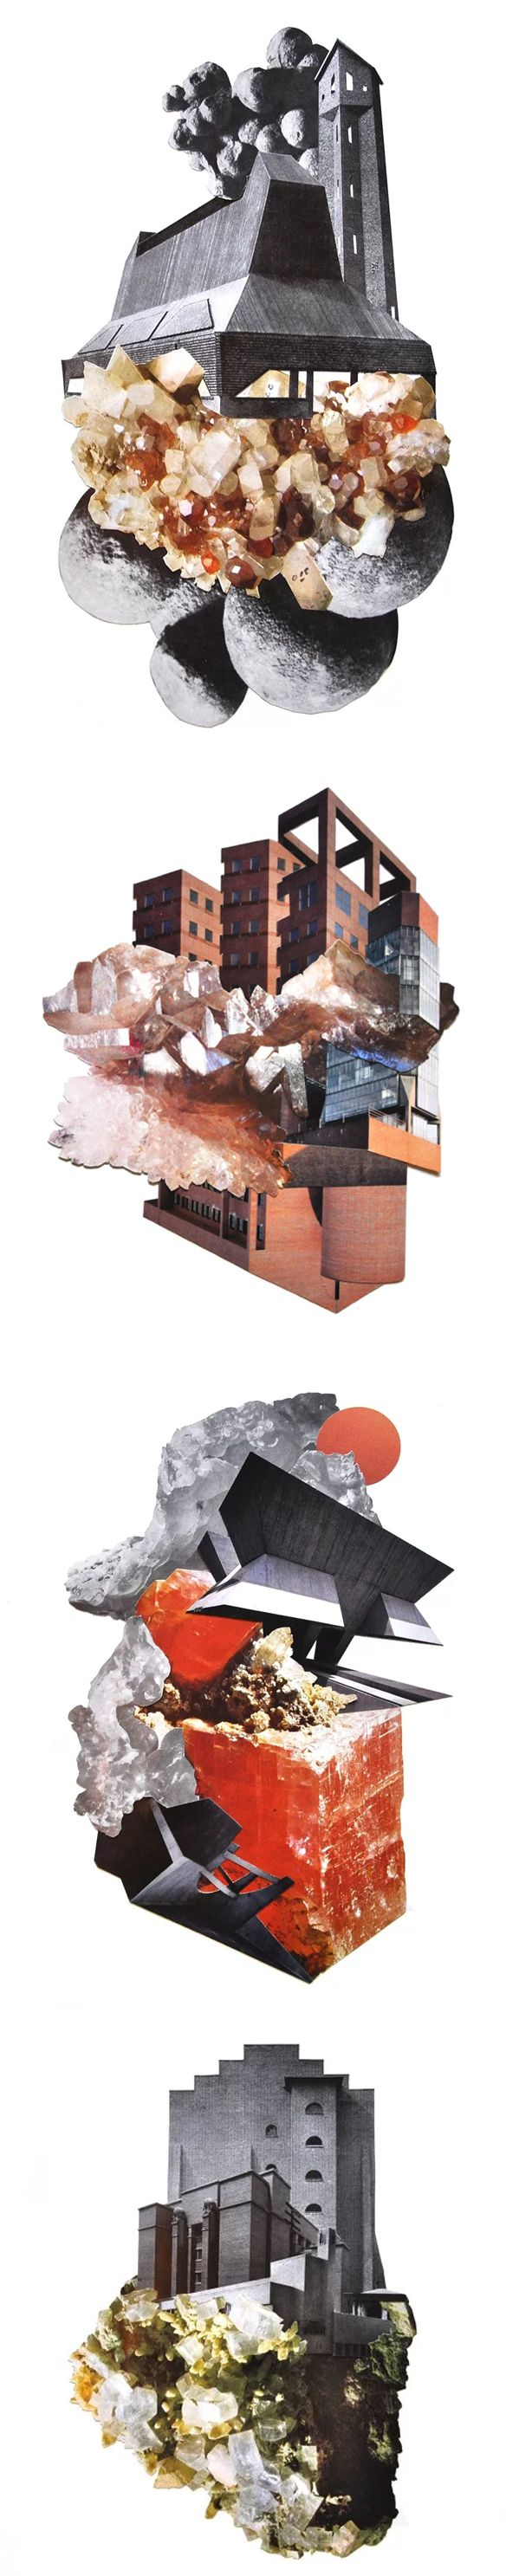 collages by aimee henny brown 拼貼式場景、建築